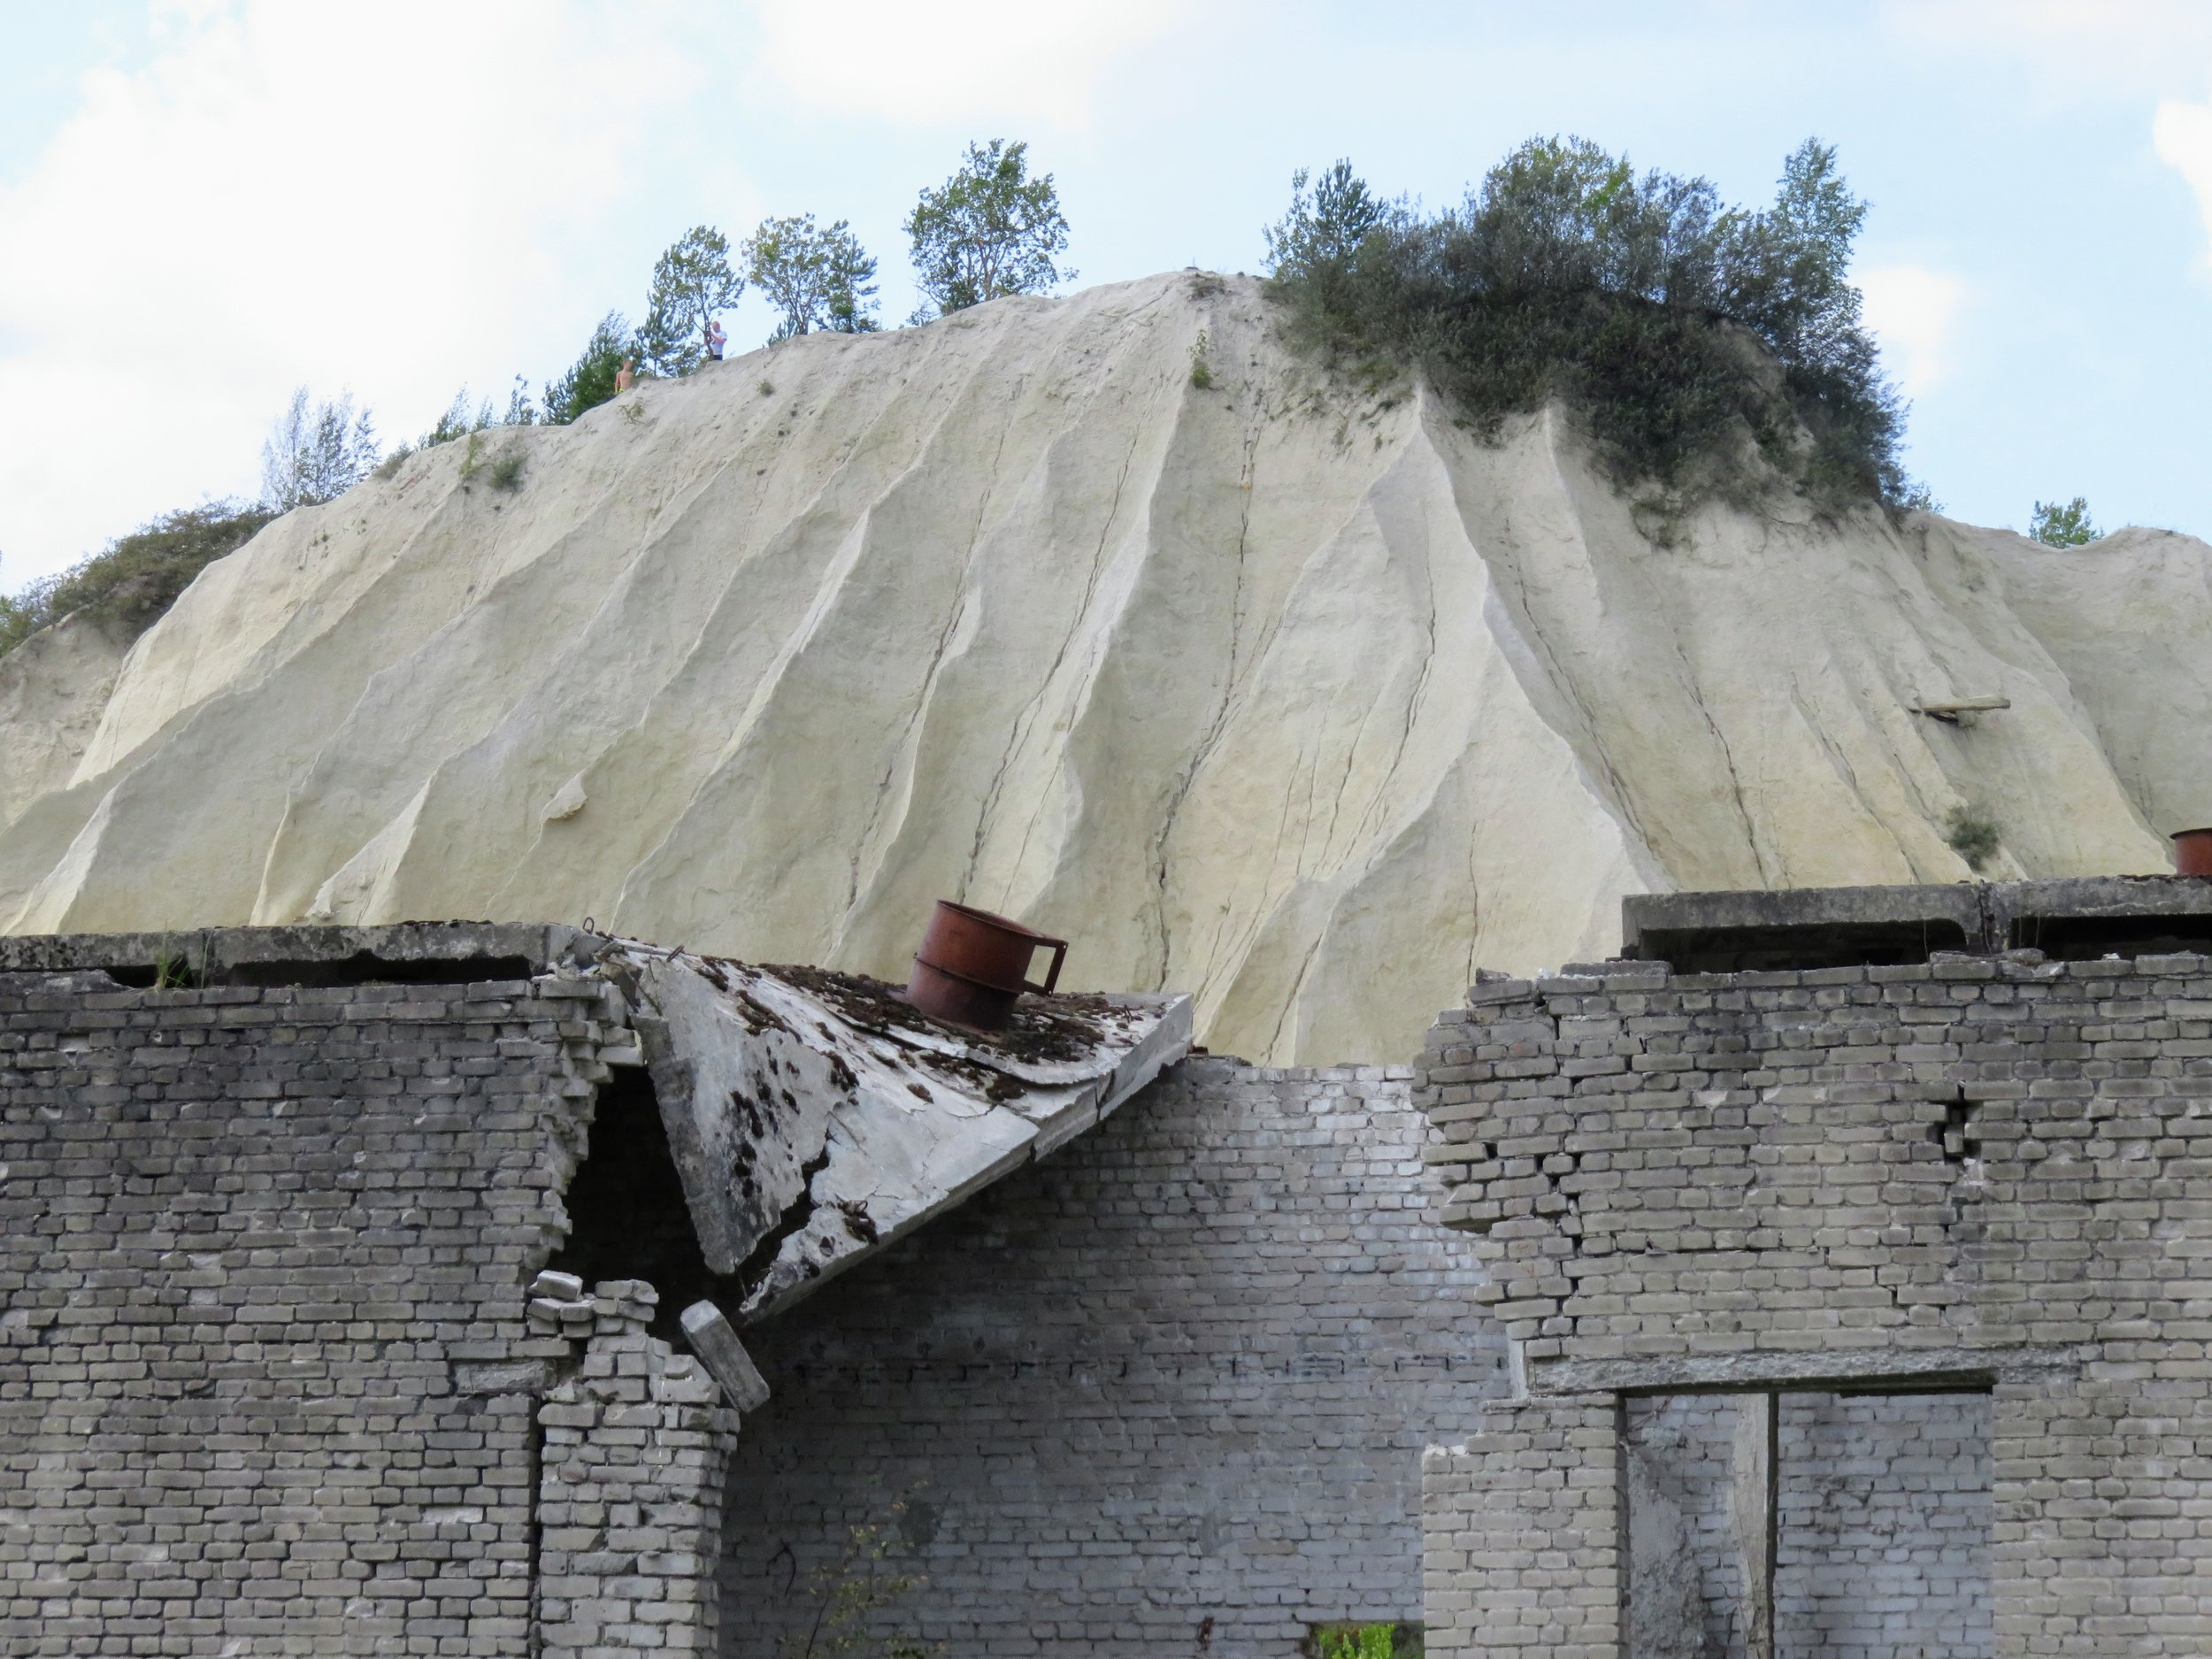 The spoil tip rising above a collapsing building.